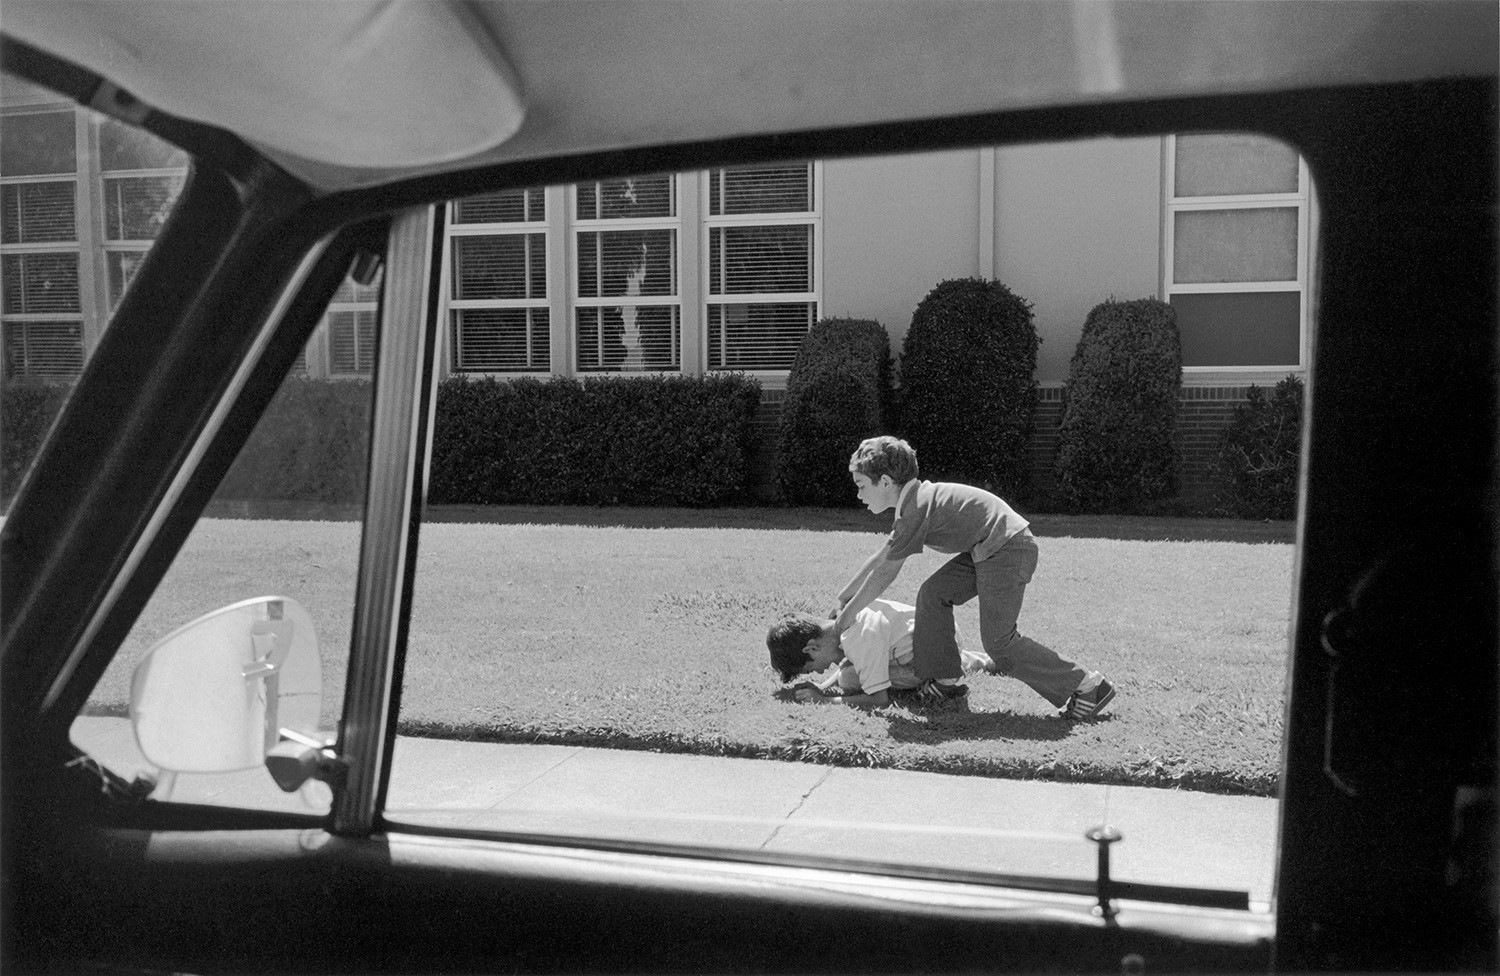 Henry Wessel, Incidents No. 6